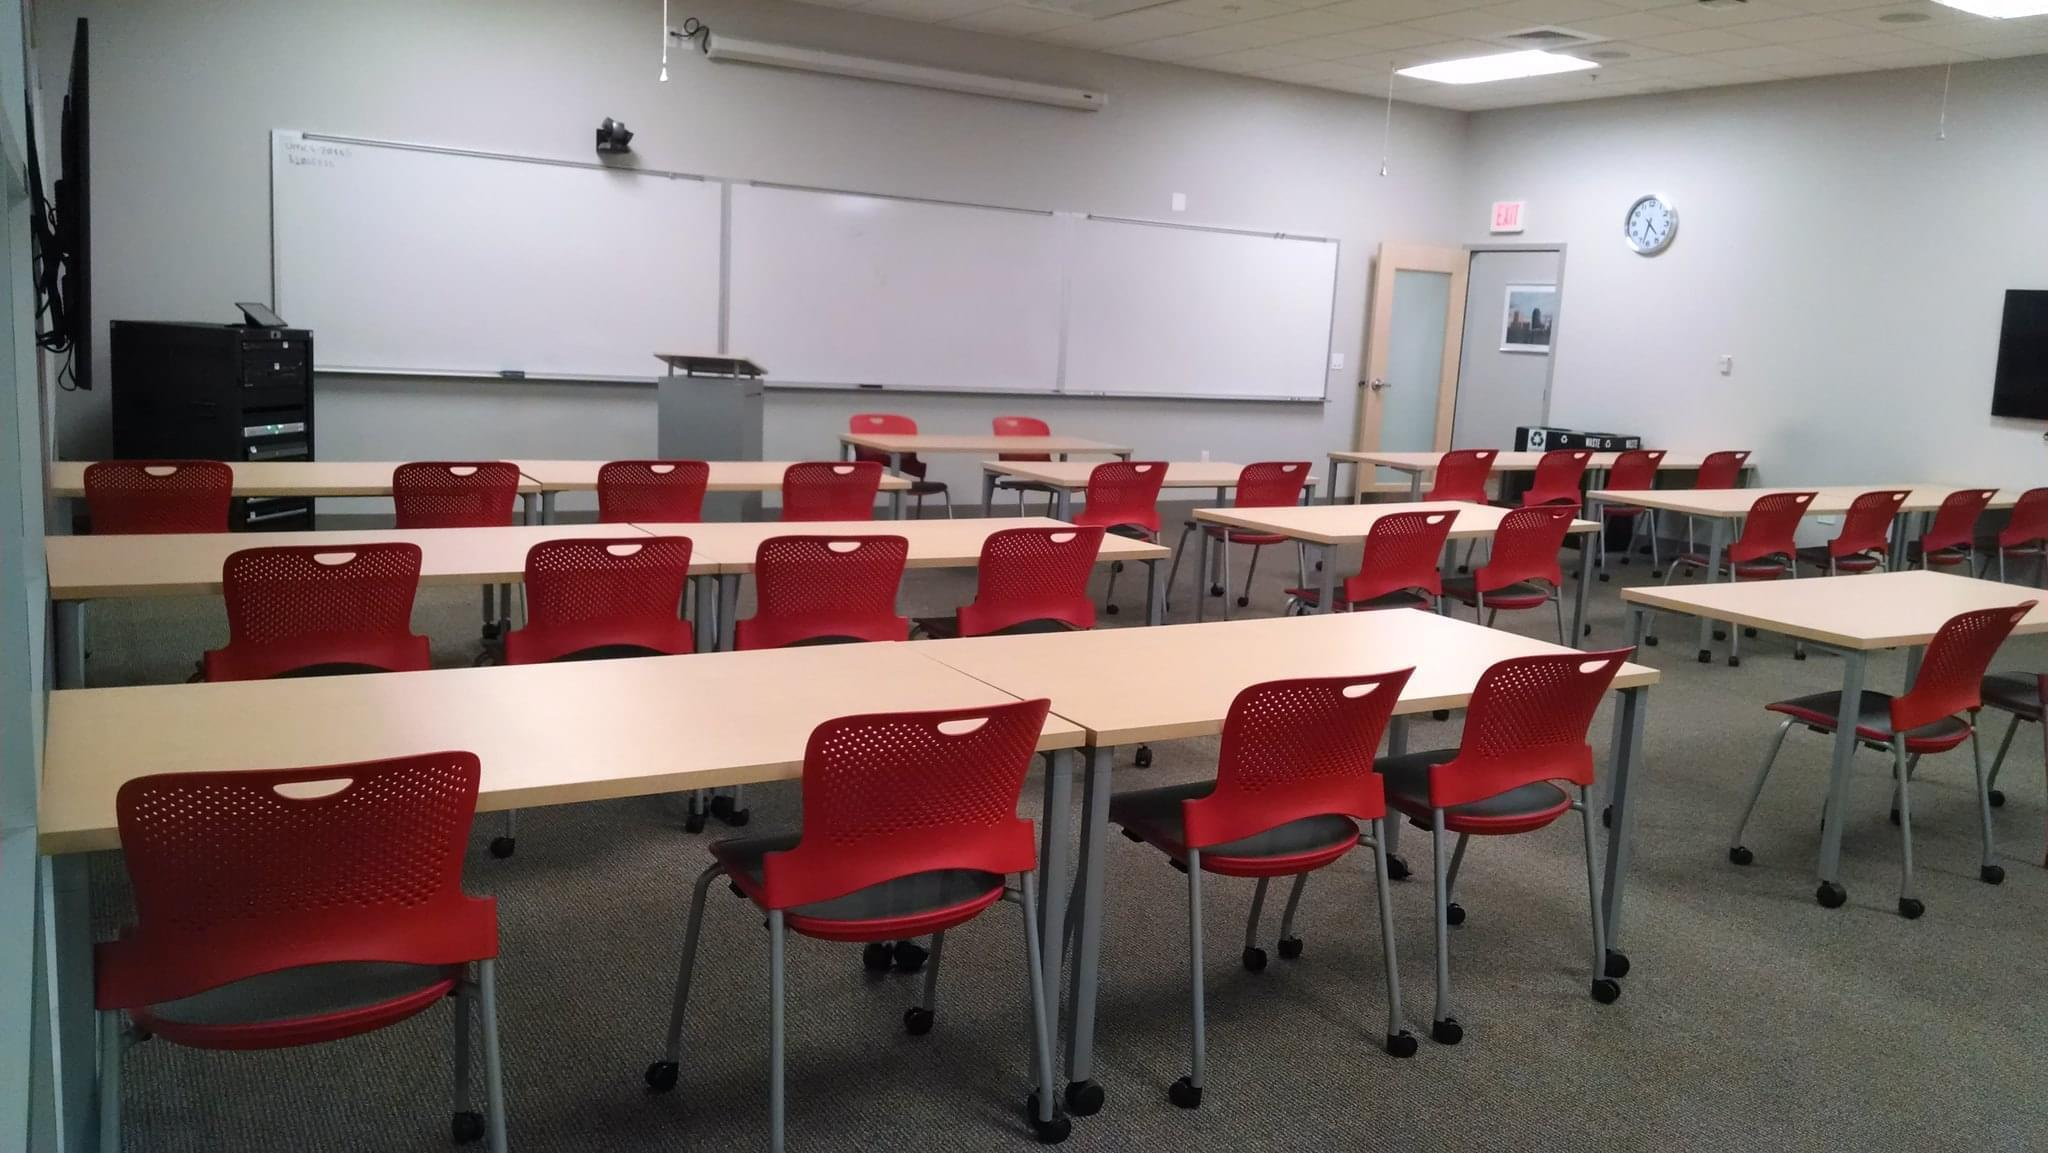 an empty classroom with red chairs